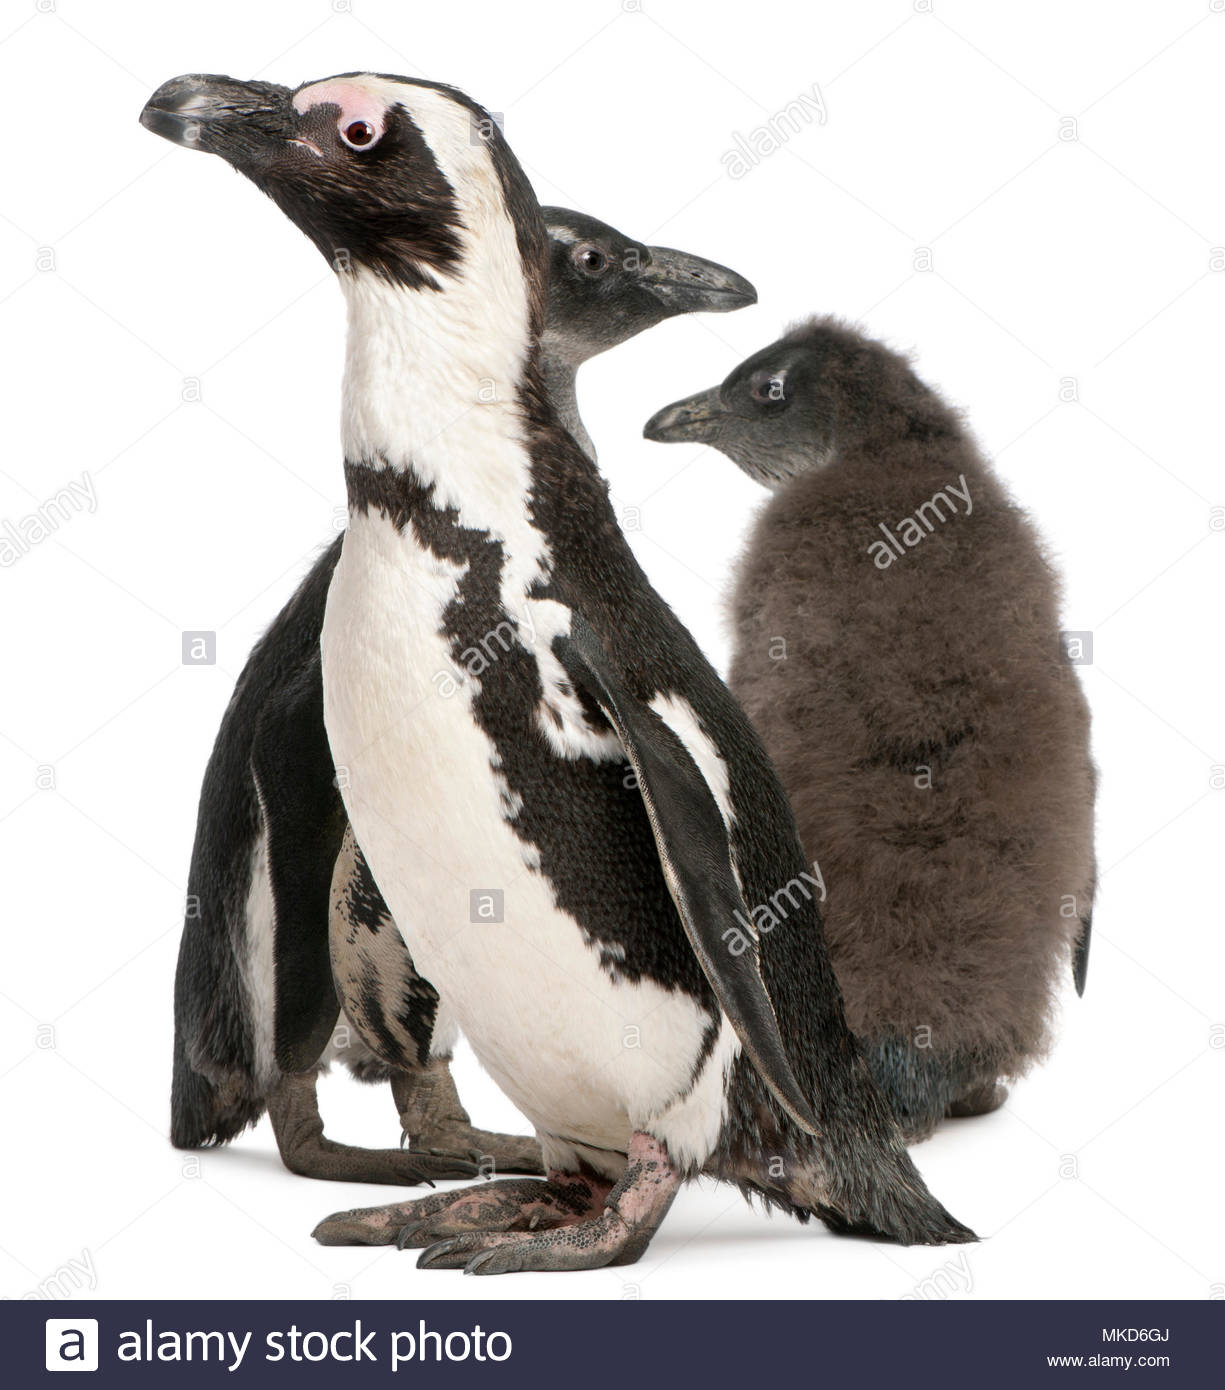 African Penguin, (Spheniscus demersus), 10 years old and 3 and 2 months old, in front of white background Mulhouse Zoological and Botanical Park, France - Stock Image